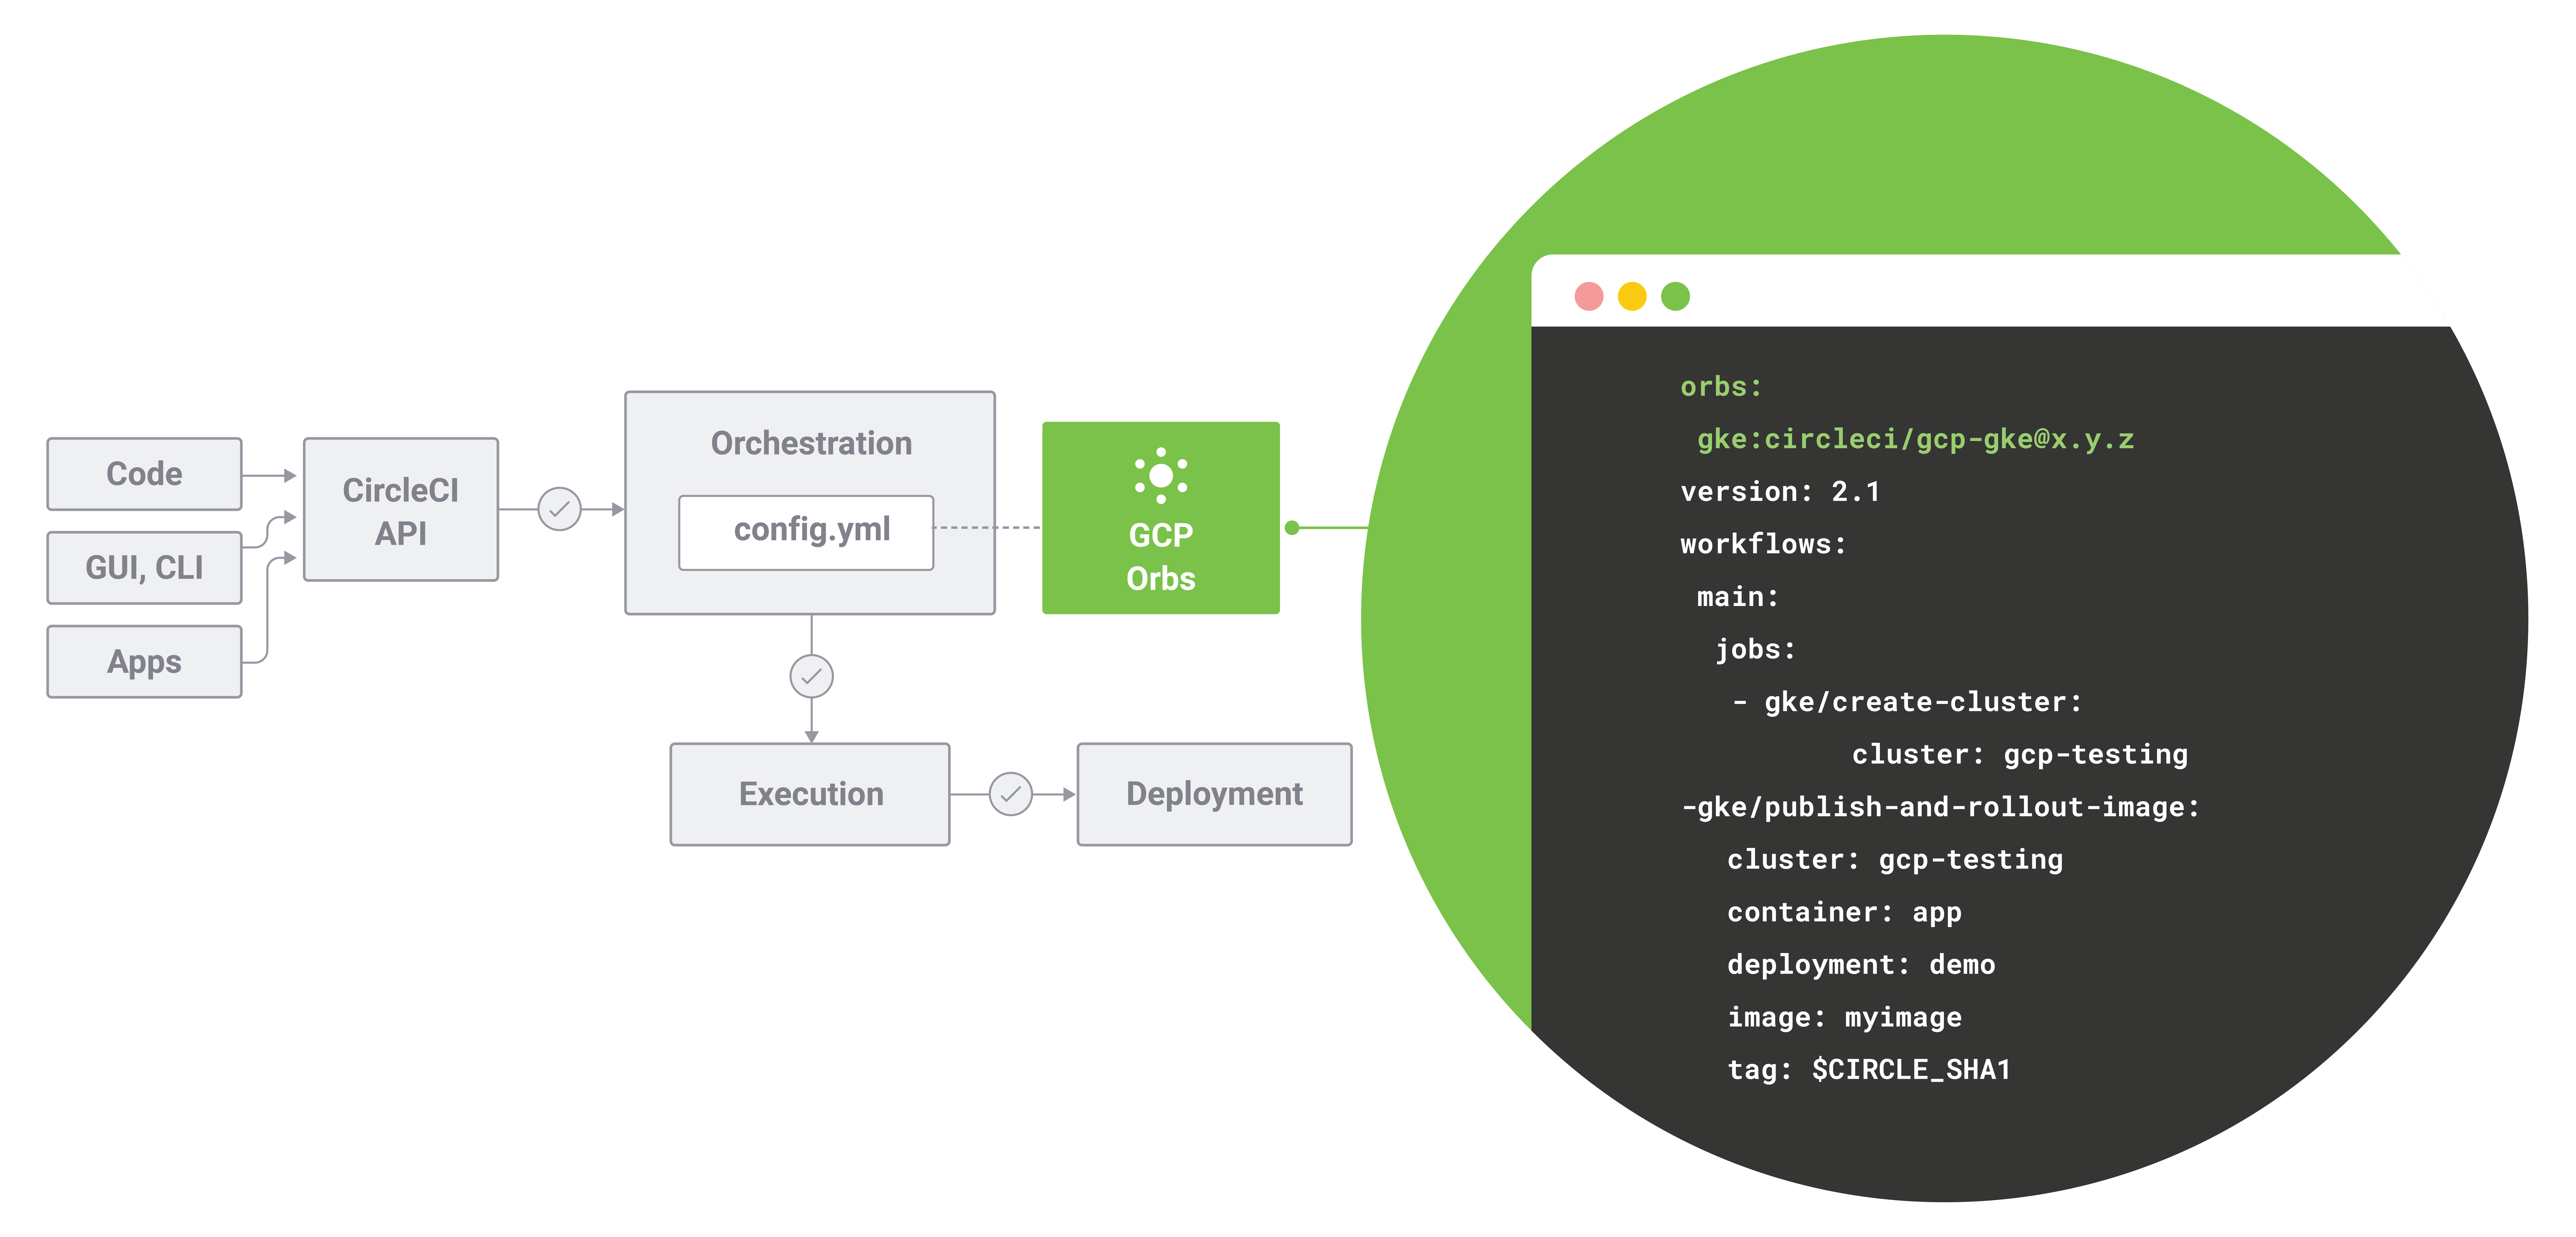 Image of how CircleCI works. CircleCI's orchestration server processes builds based on the YAML file. The YAML file contains GCP orbs that resolve during runtime. Using instructions from the GCP orb, CircleCI deploys to the Google Cloud Platform.